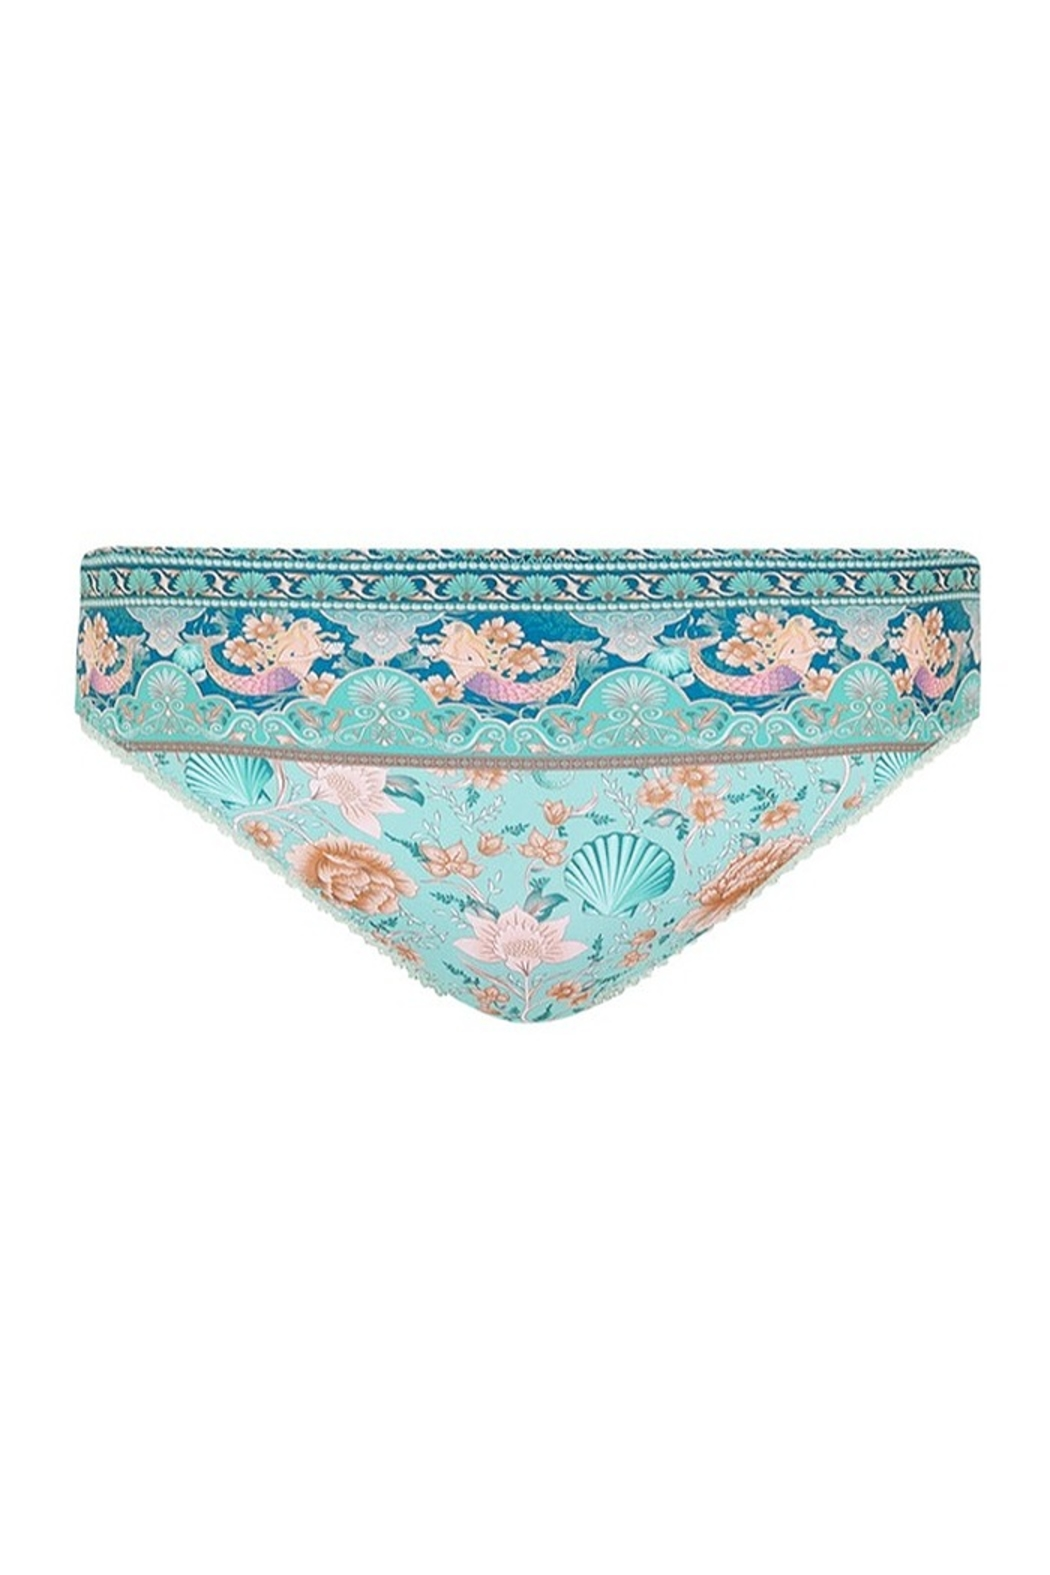 Spell & the Gypsy Collective Seashell Bloomers - Seafoam - Front Full Image